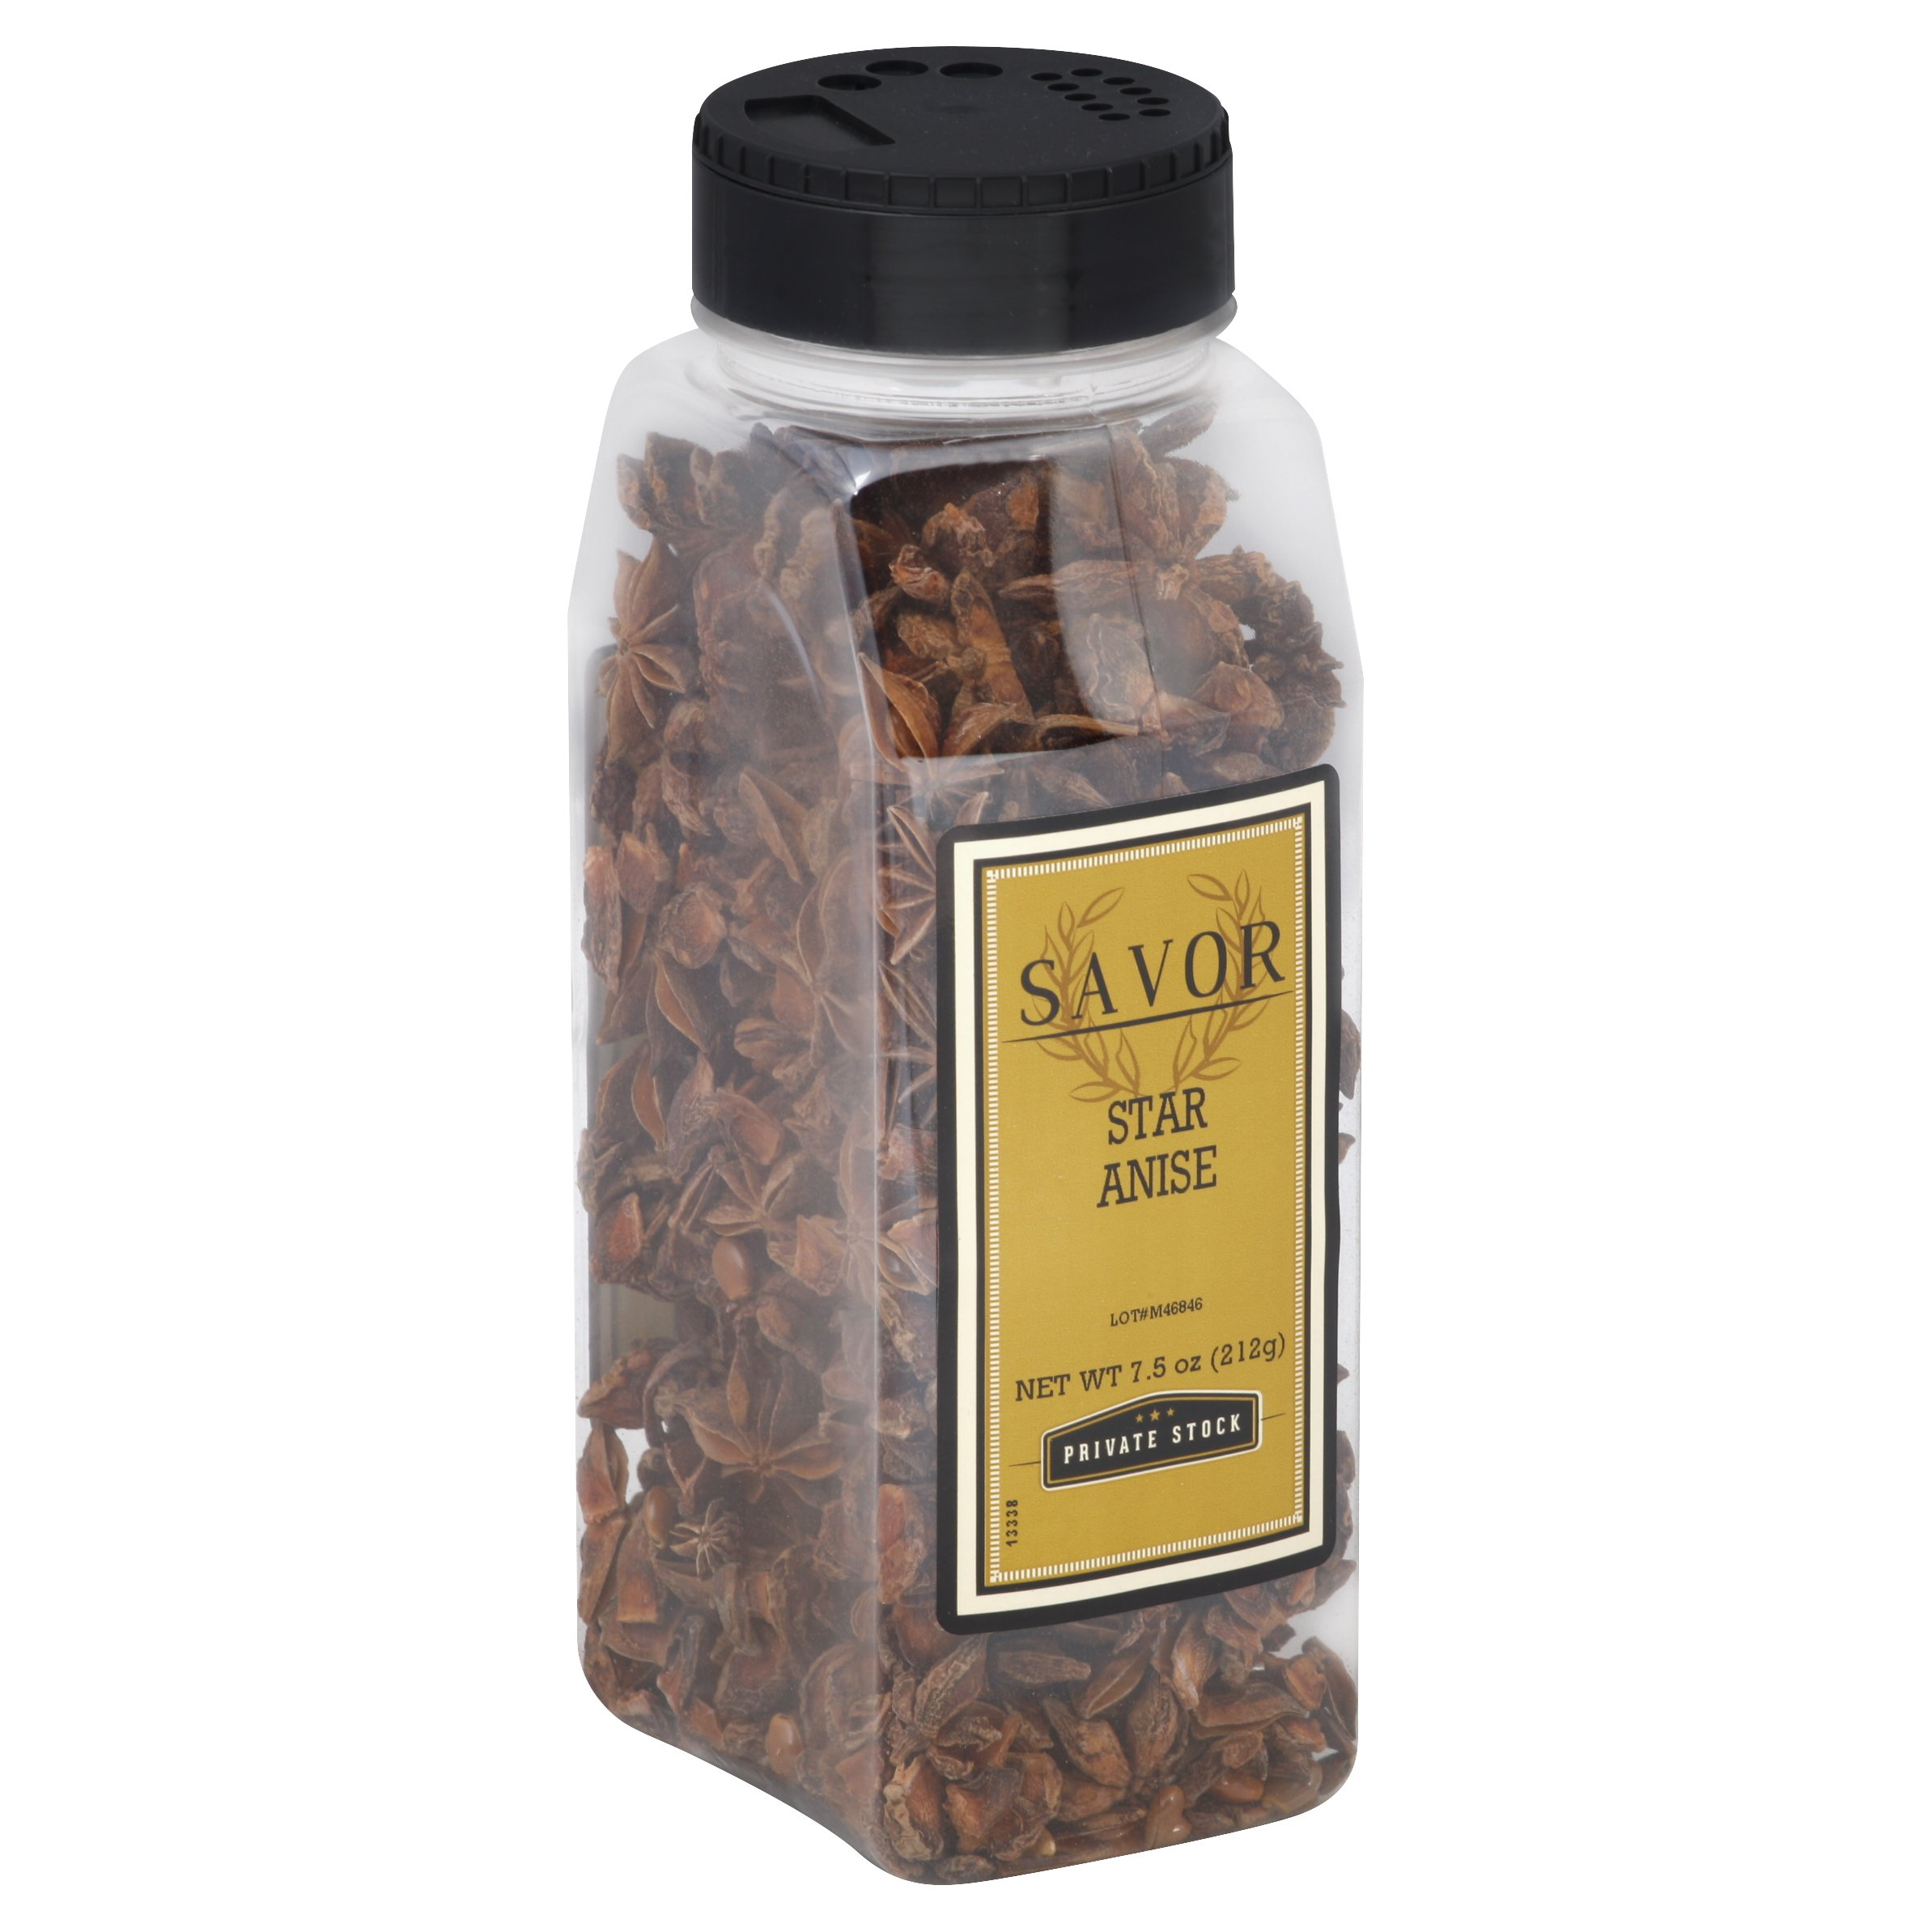 Savor, Star Anise 7.5 oz. (6 count) by Savor (Image #1)